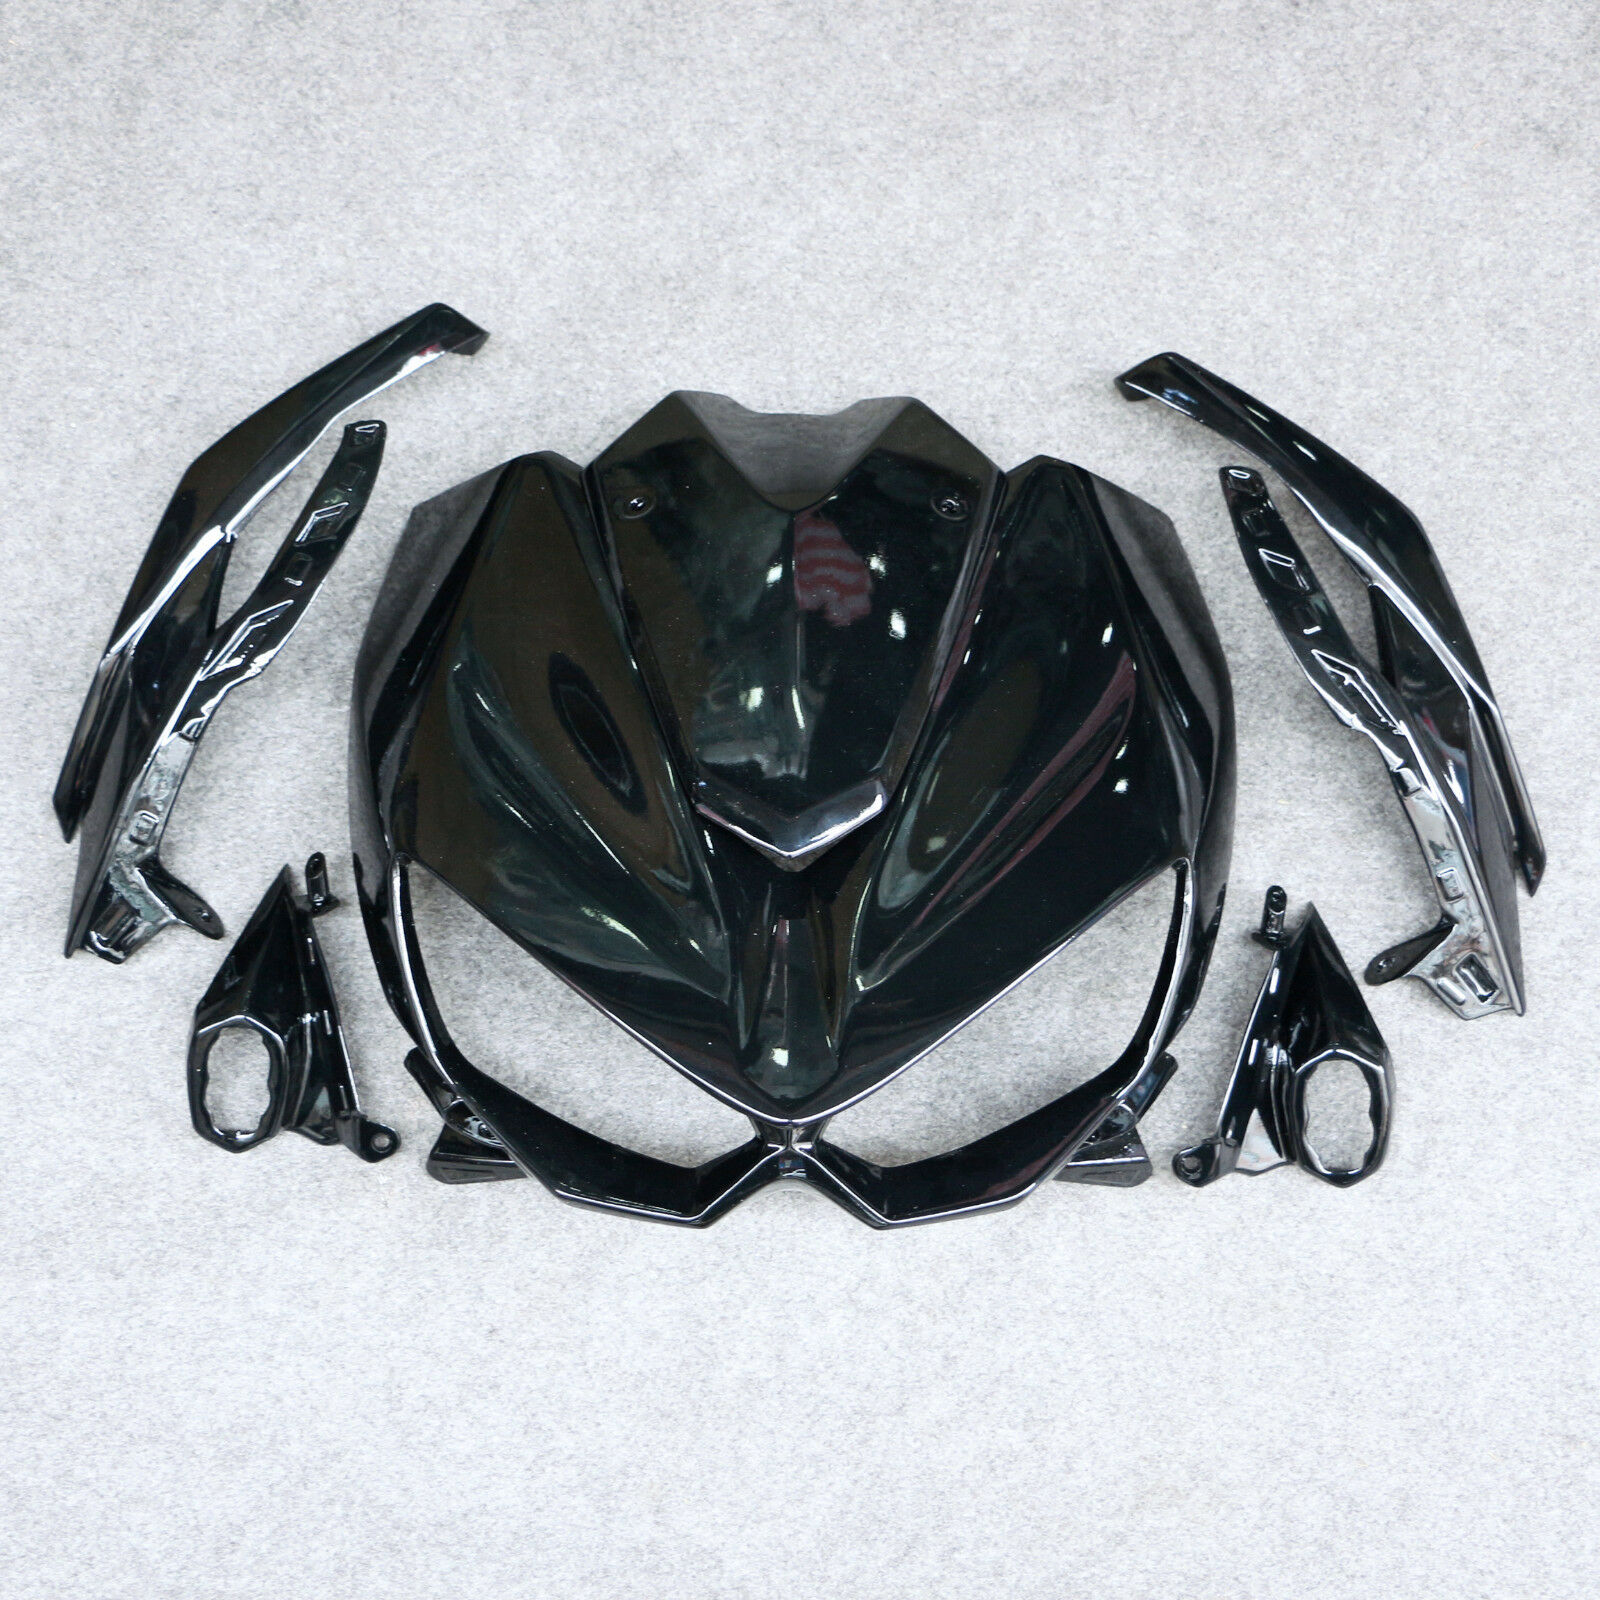 Pearl Black Fit For Z1000 2014-2016 2015 Z 1000 Motorcycle ABS Front Upper Cowl Nose Fairing